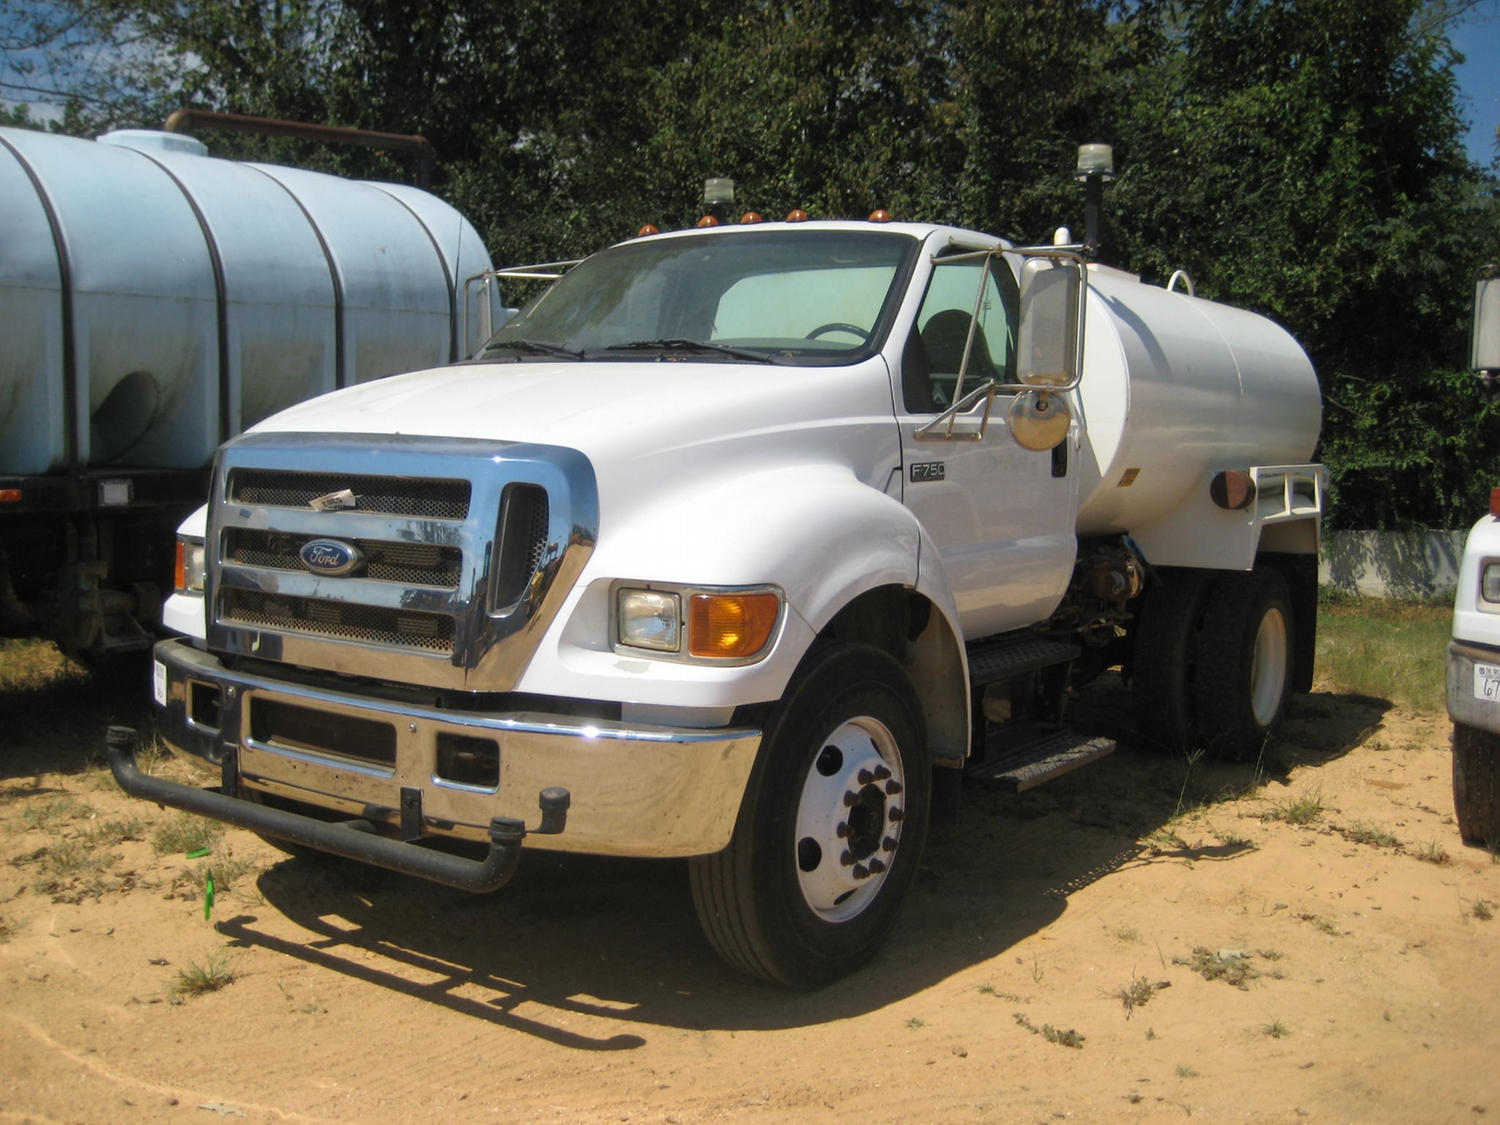 small resolution of image 1 2005 ford f750 super duty s a water truck